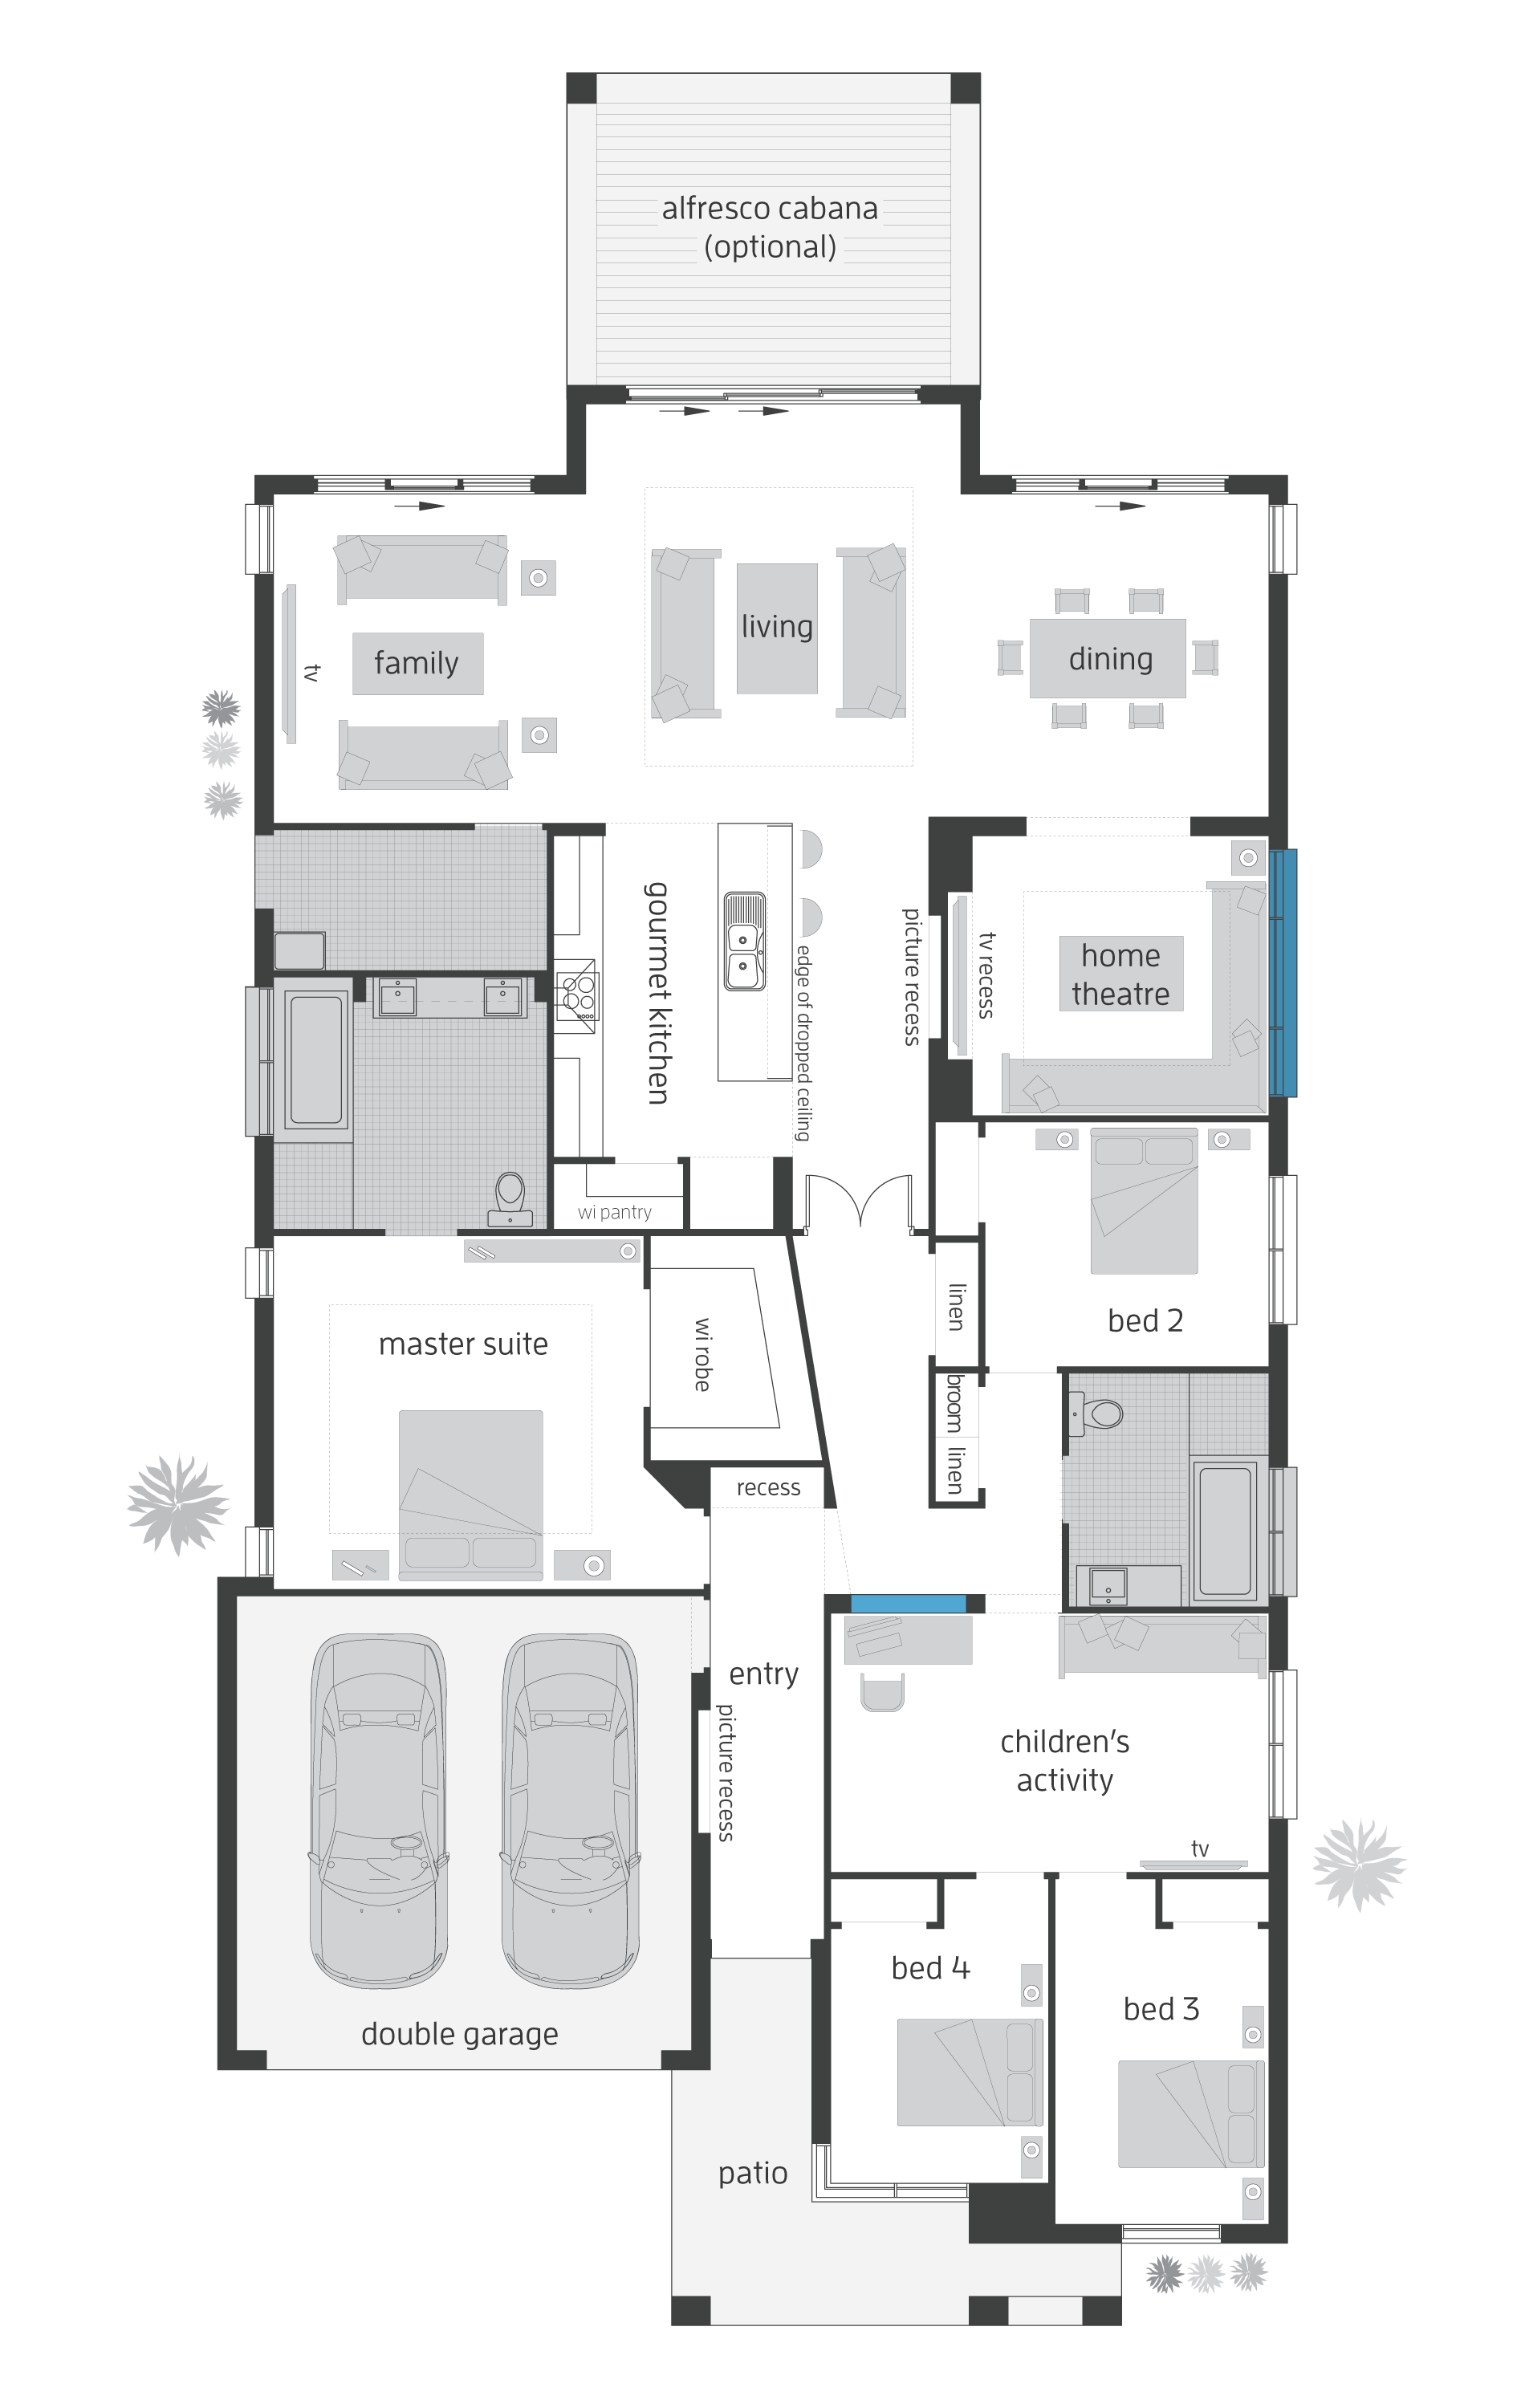 House plans with rear views australia escortsea for Rear view house plans